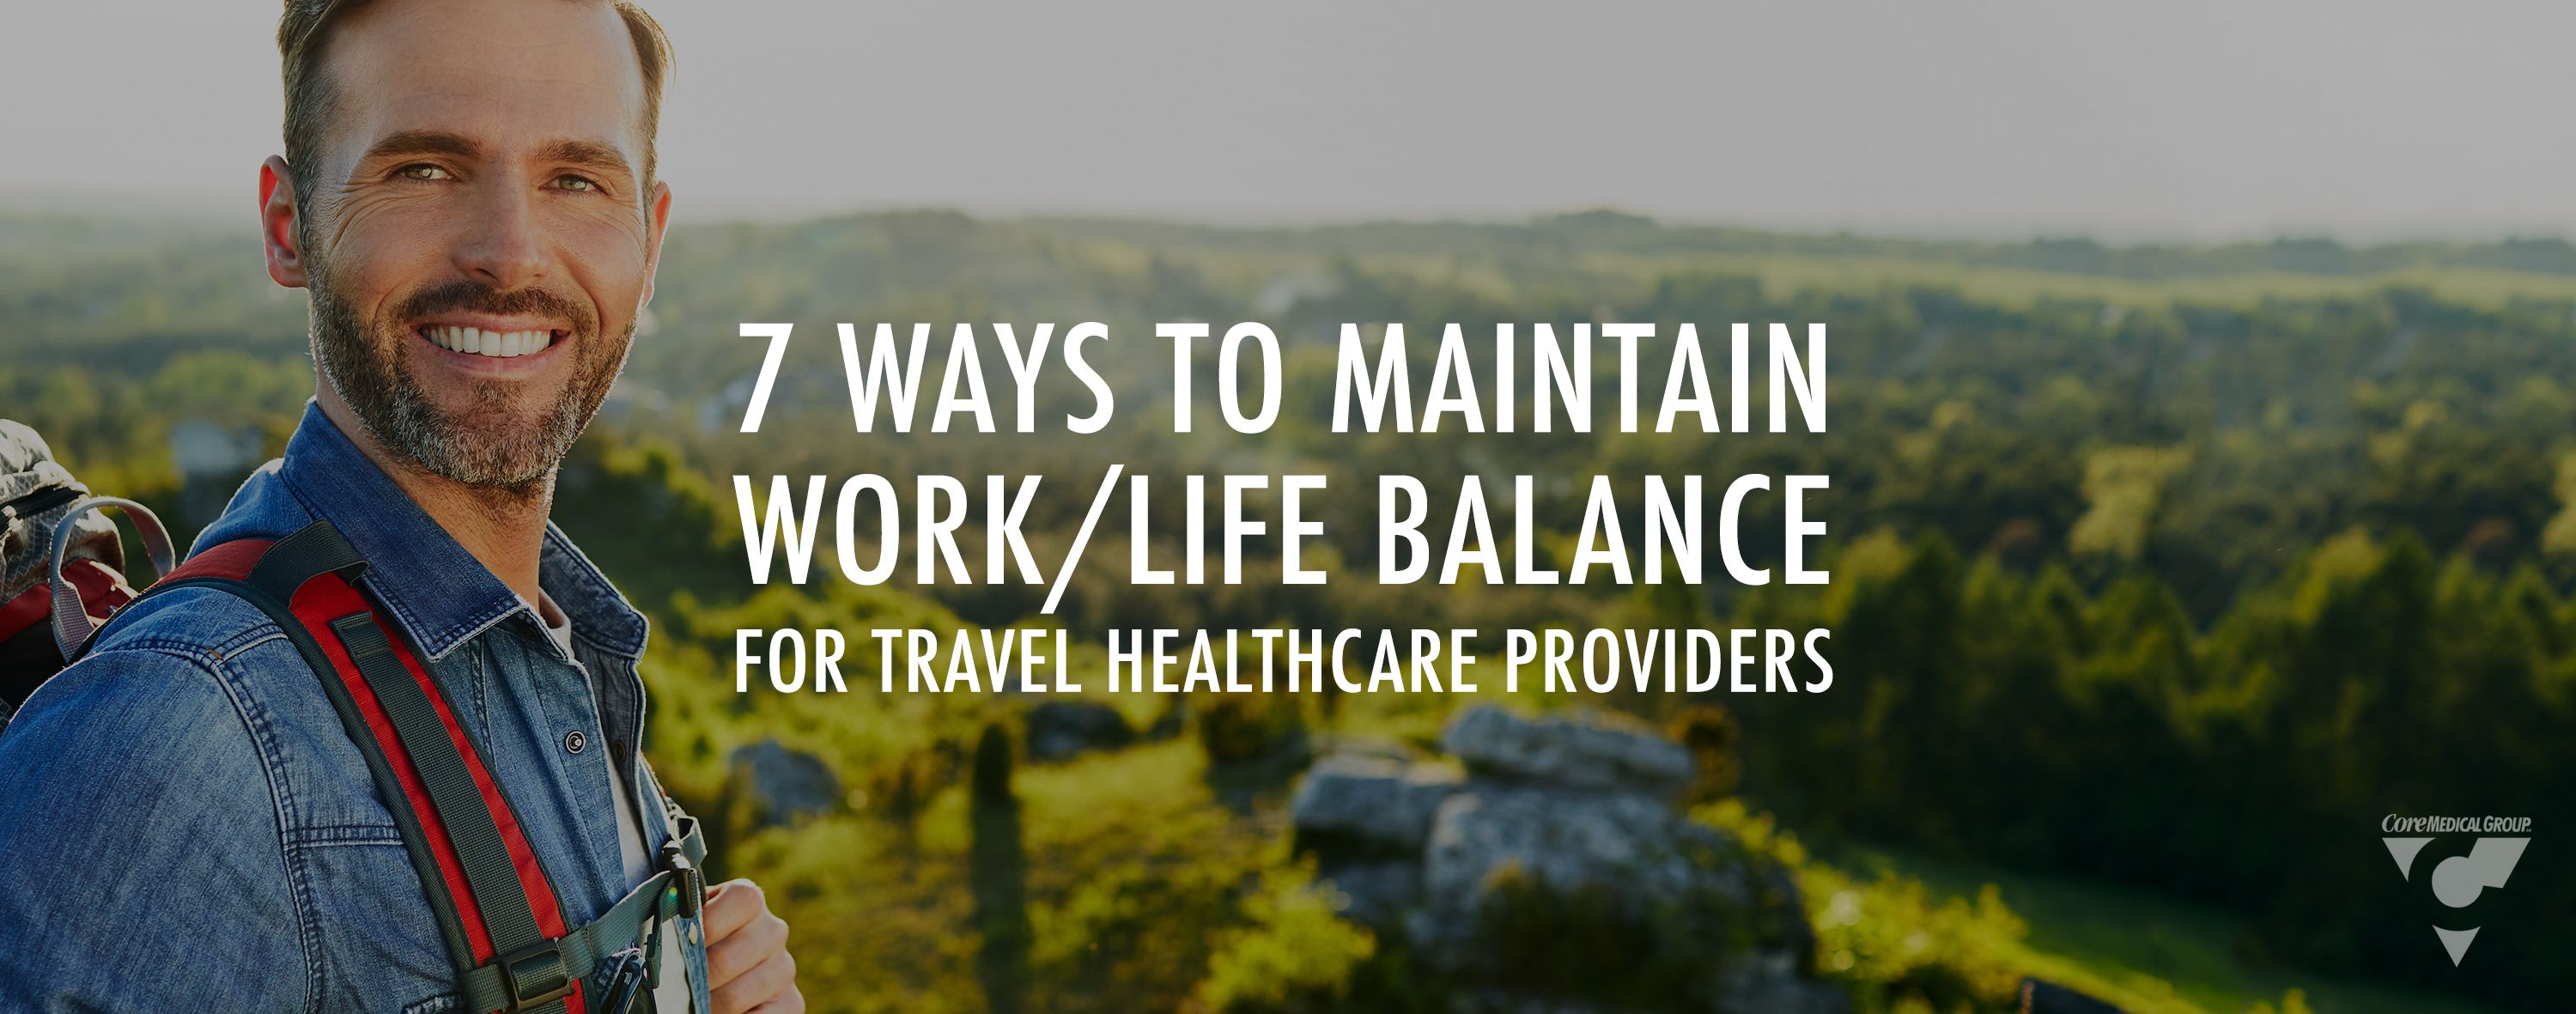 7 ways to maintain work life balance for travel healthcare providers travel nurses